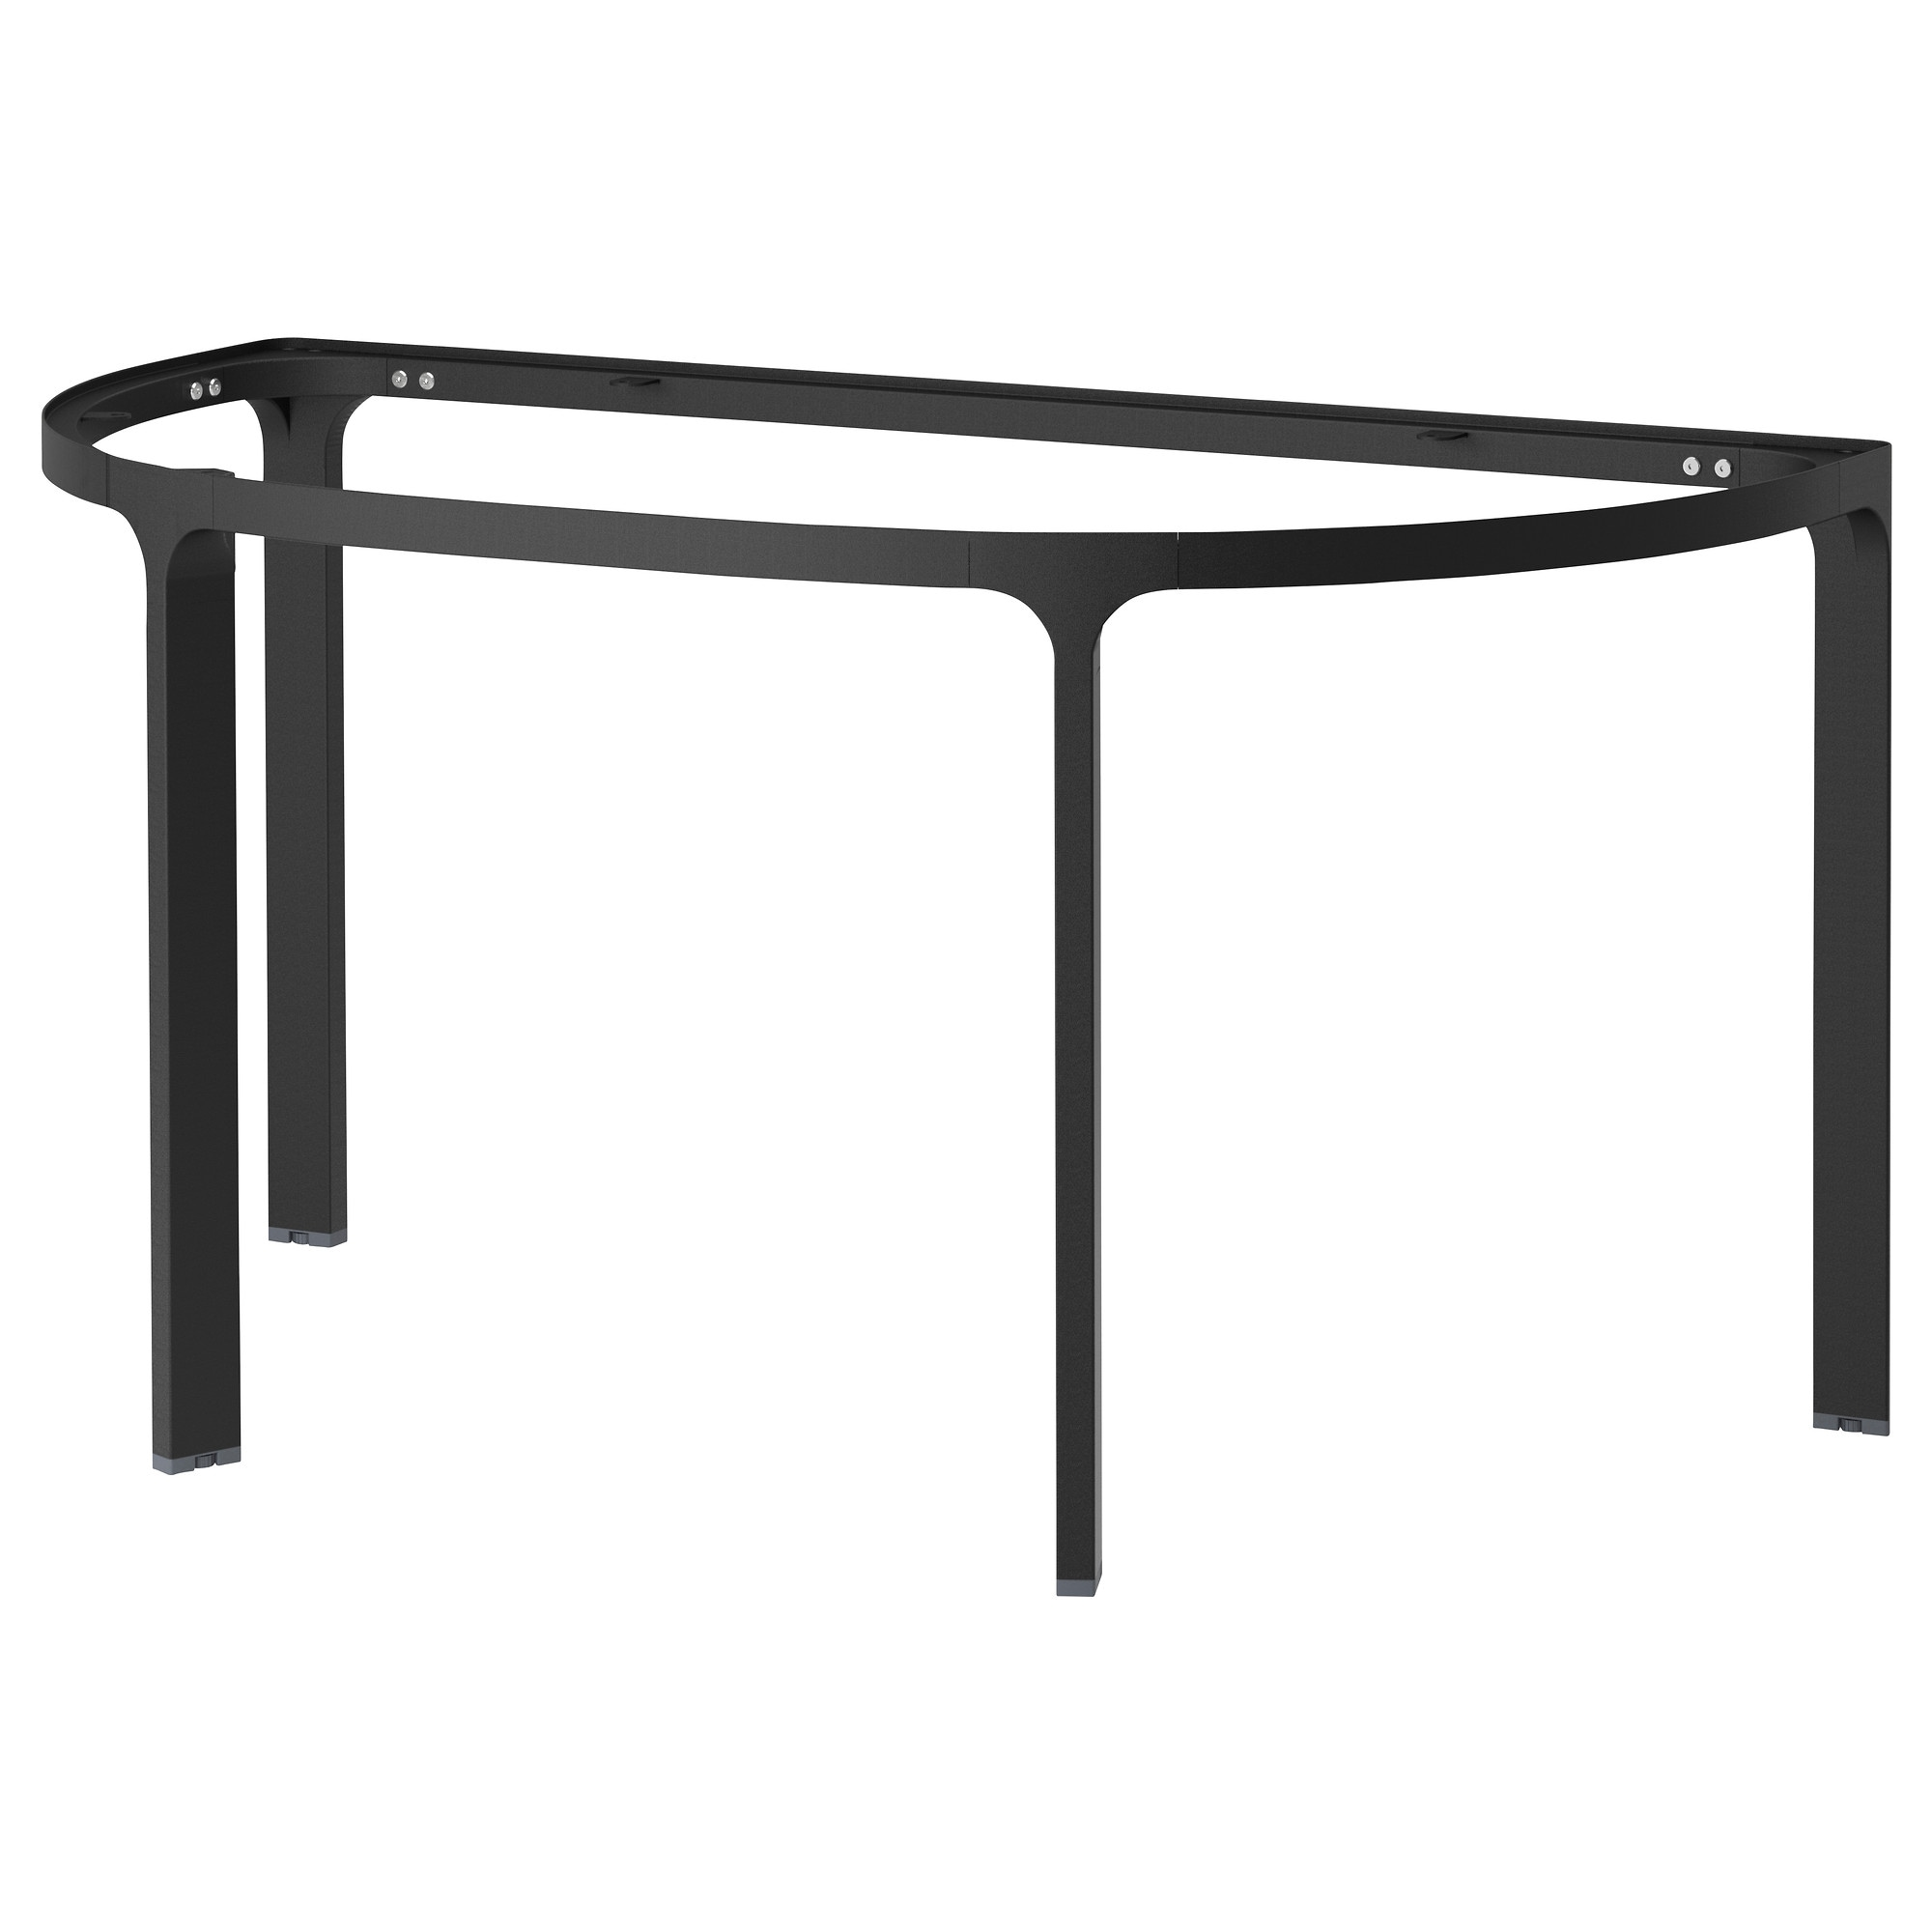 BEKANT Frame For Half Round Table Top, Black